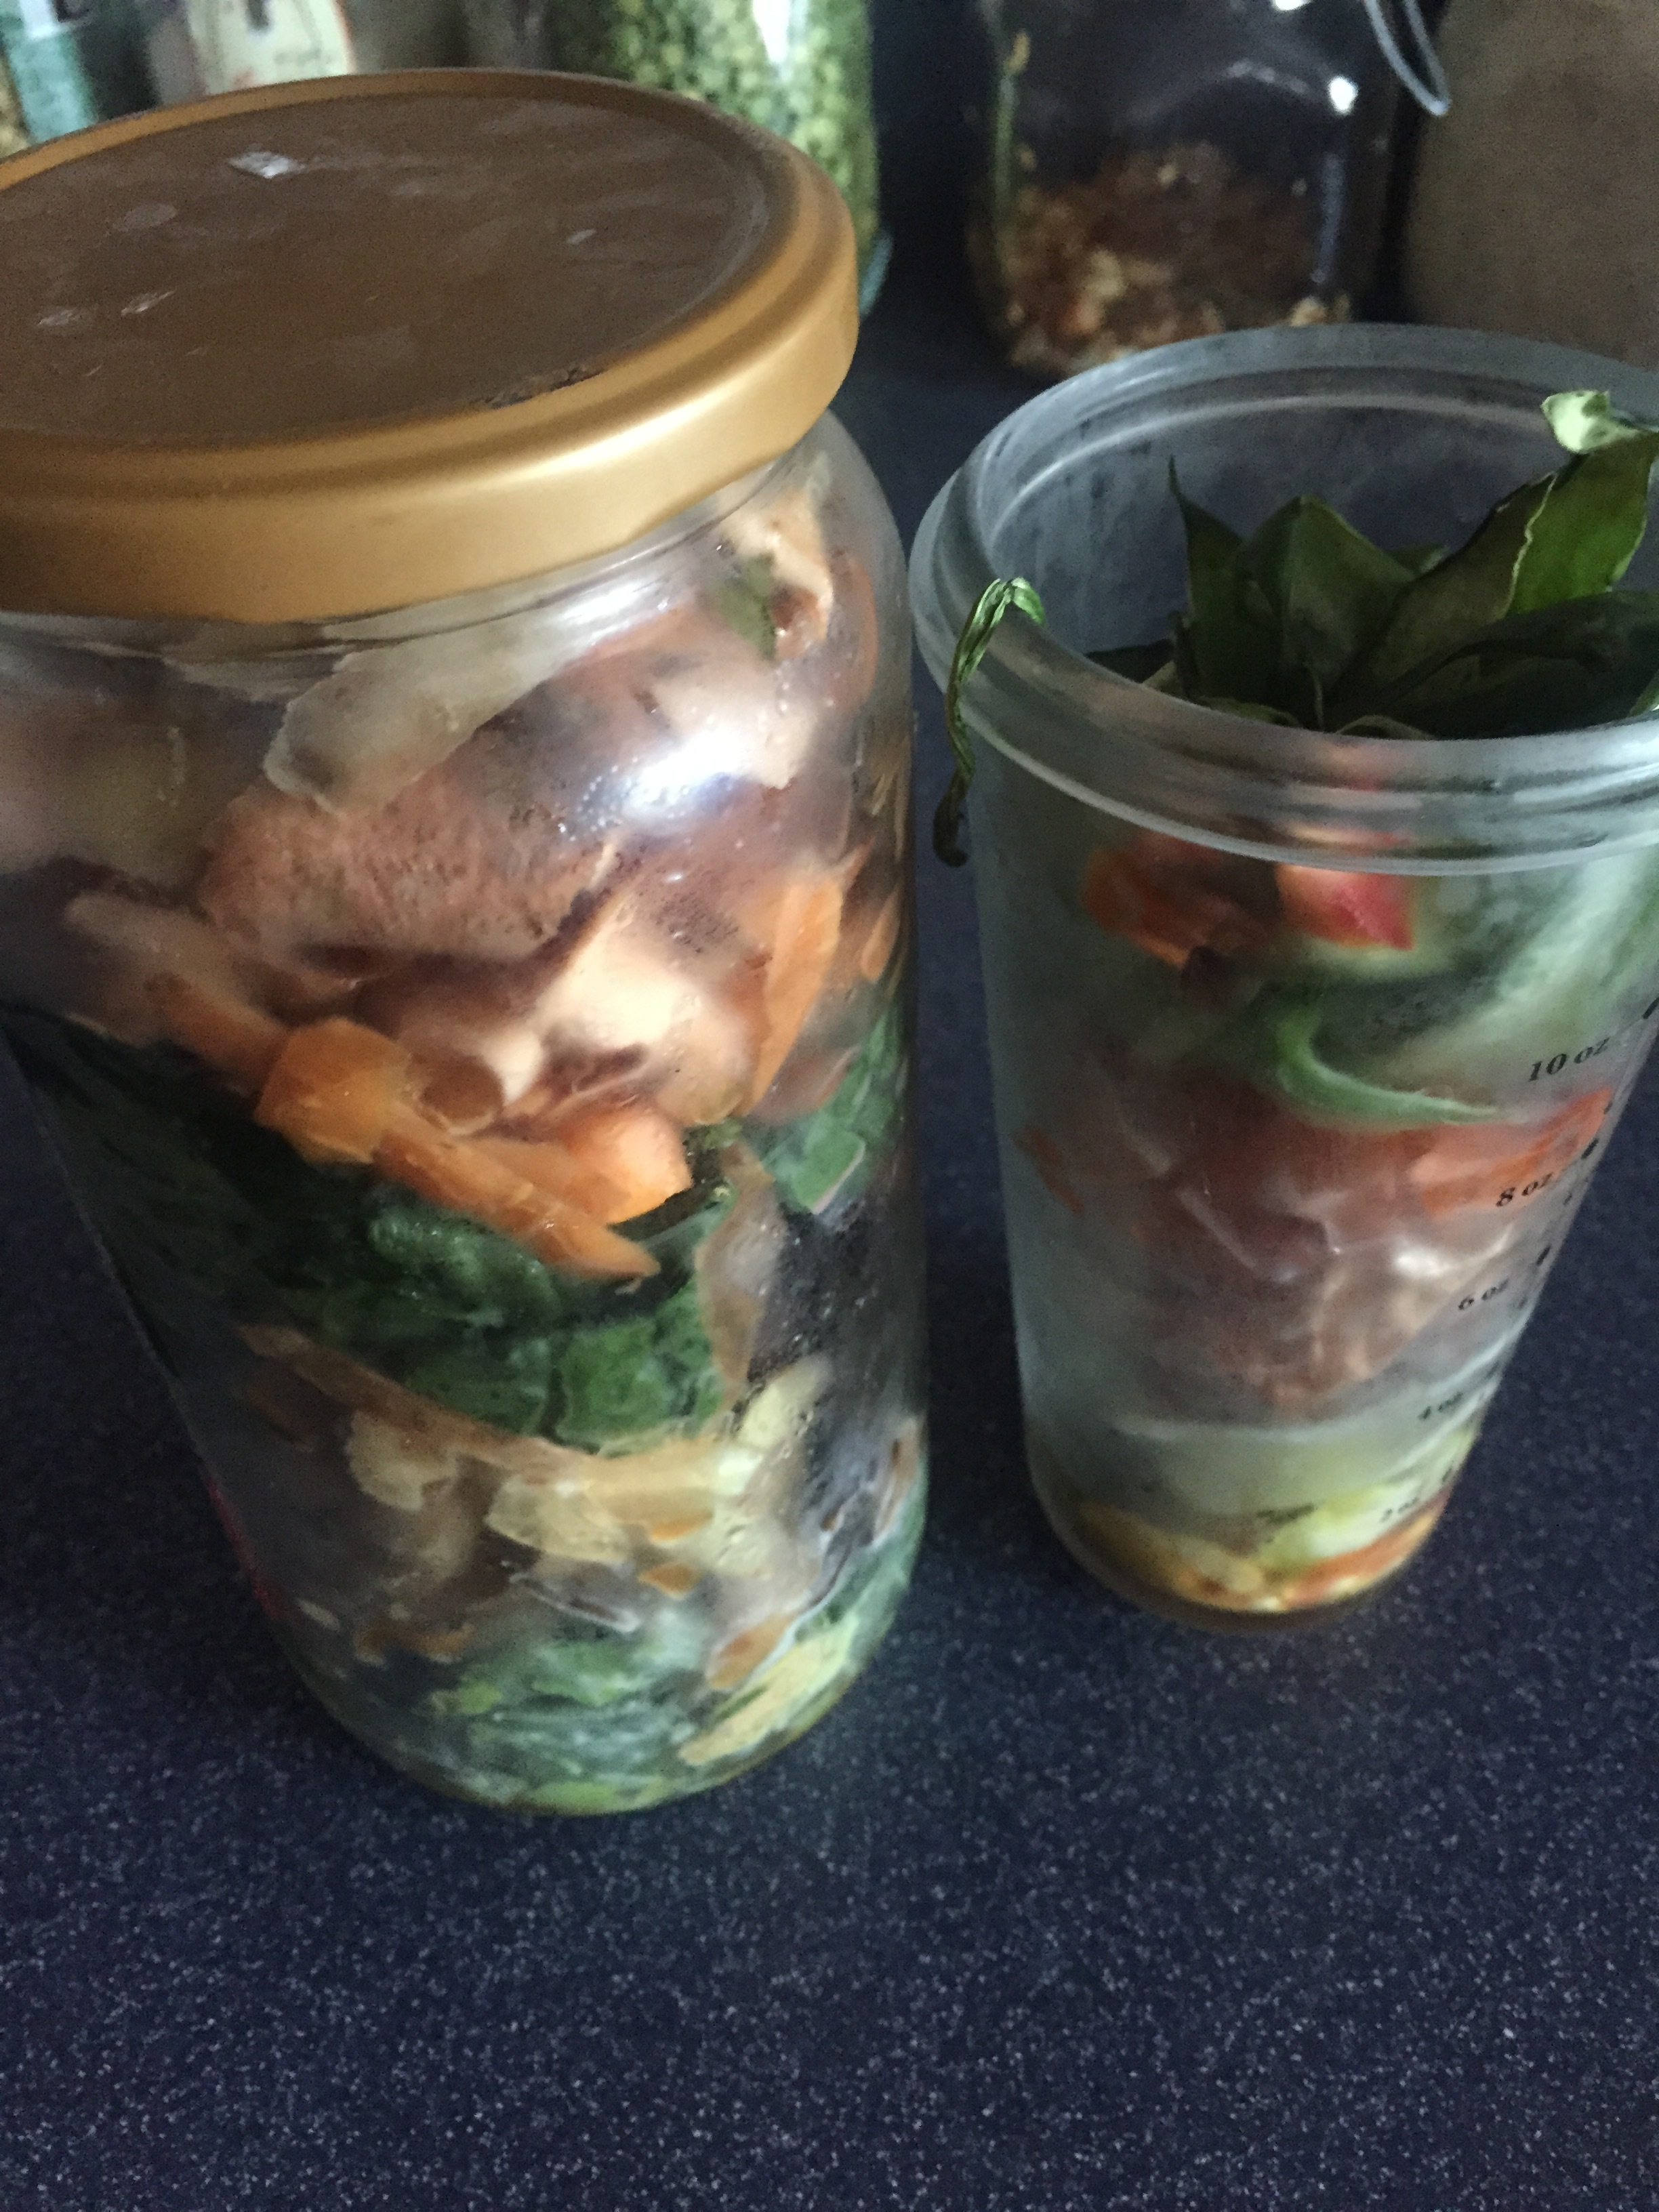 I store the kitchens scraps in glass containers in the fridge. No major issues with smell in the fridge or by the compost.